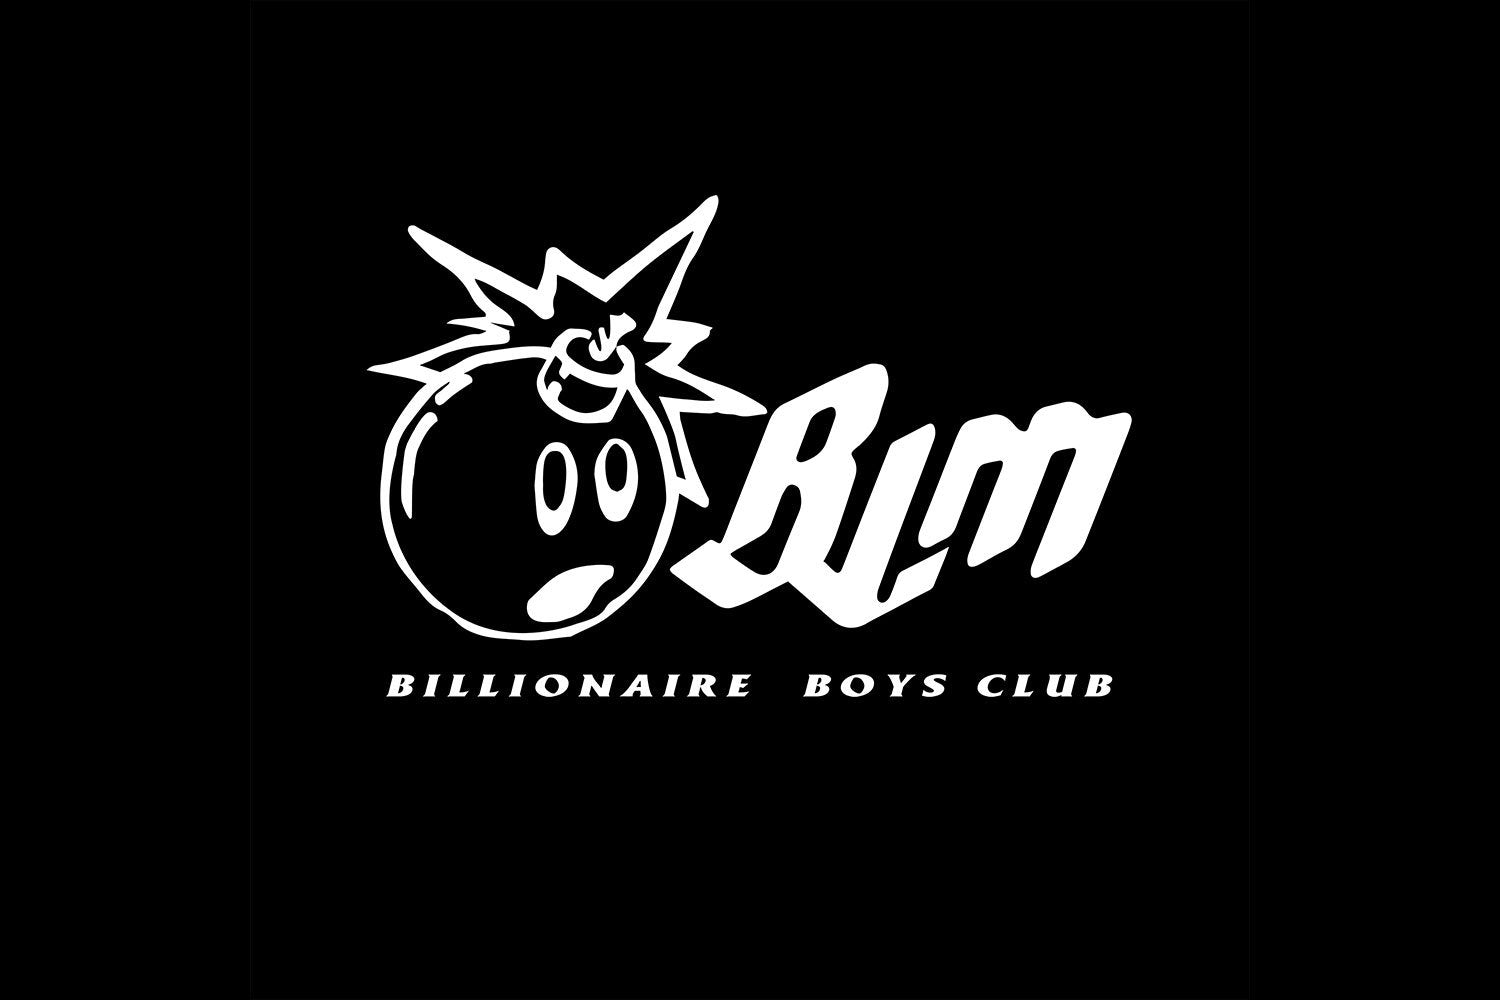 Billionaire Boys Club and The Hundreds for Black Lives Matter